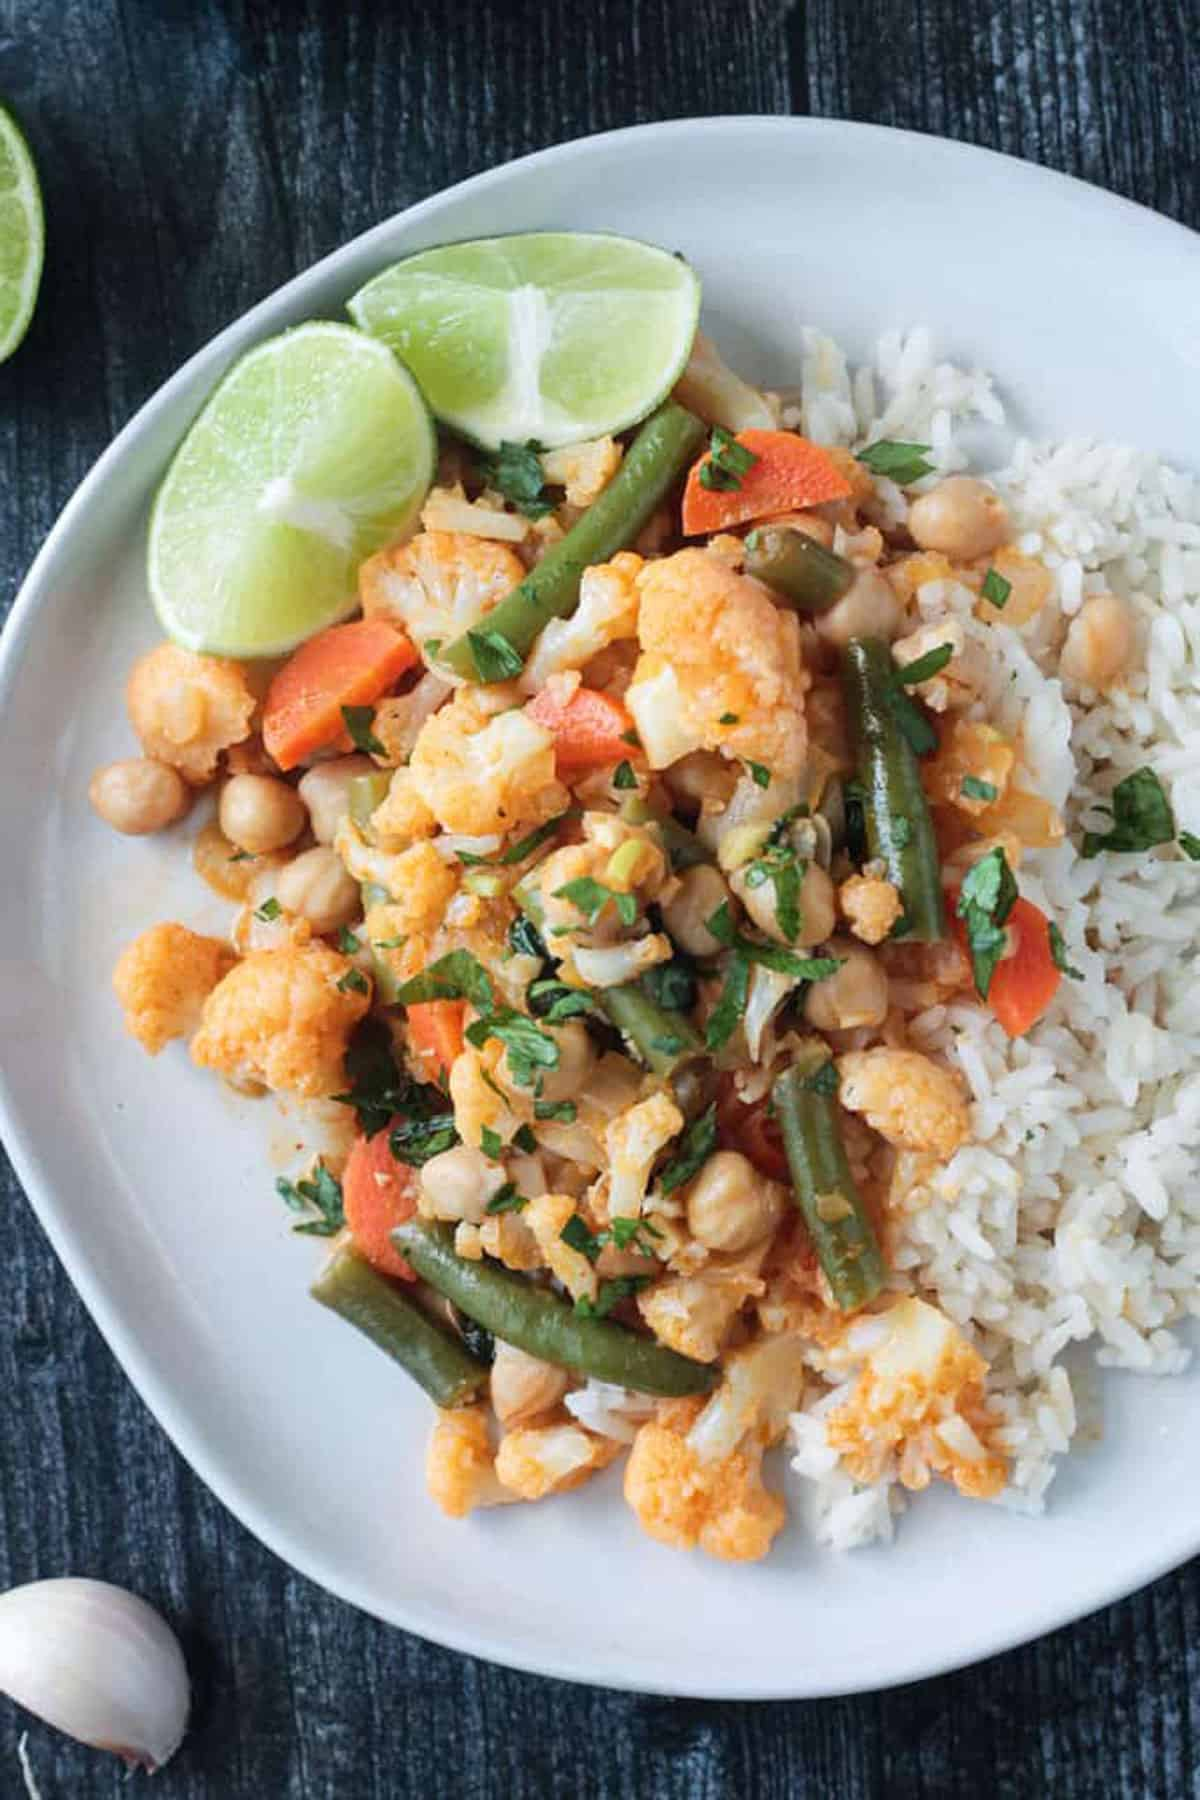 Close up of cauliflower, green beans and carrots in sauce next to rice.